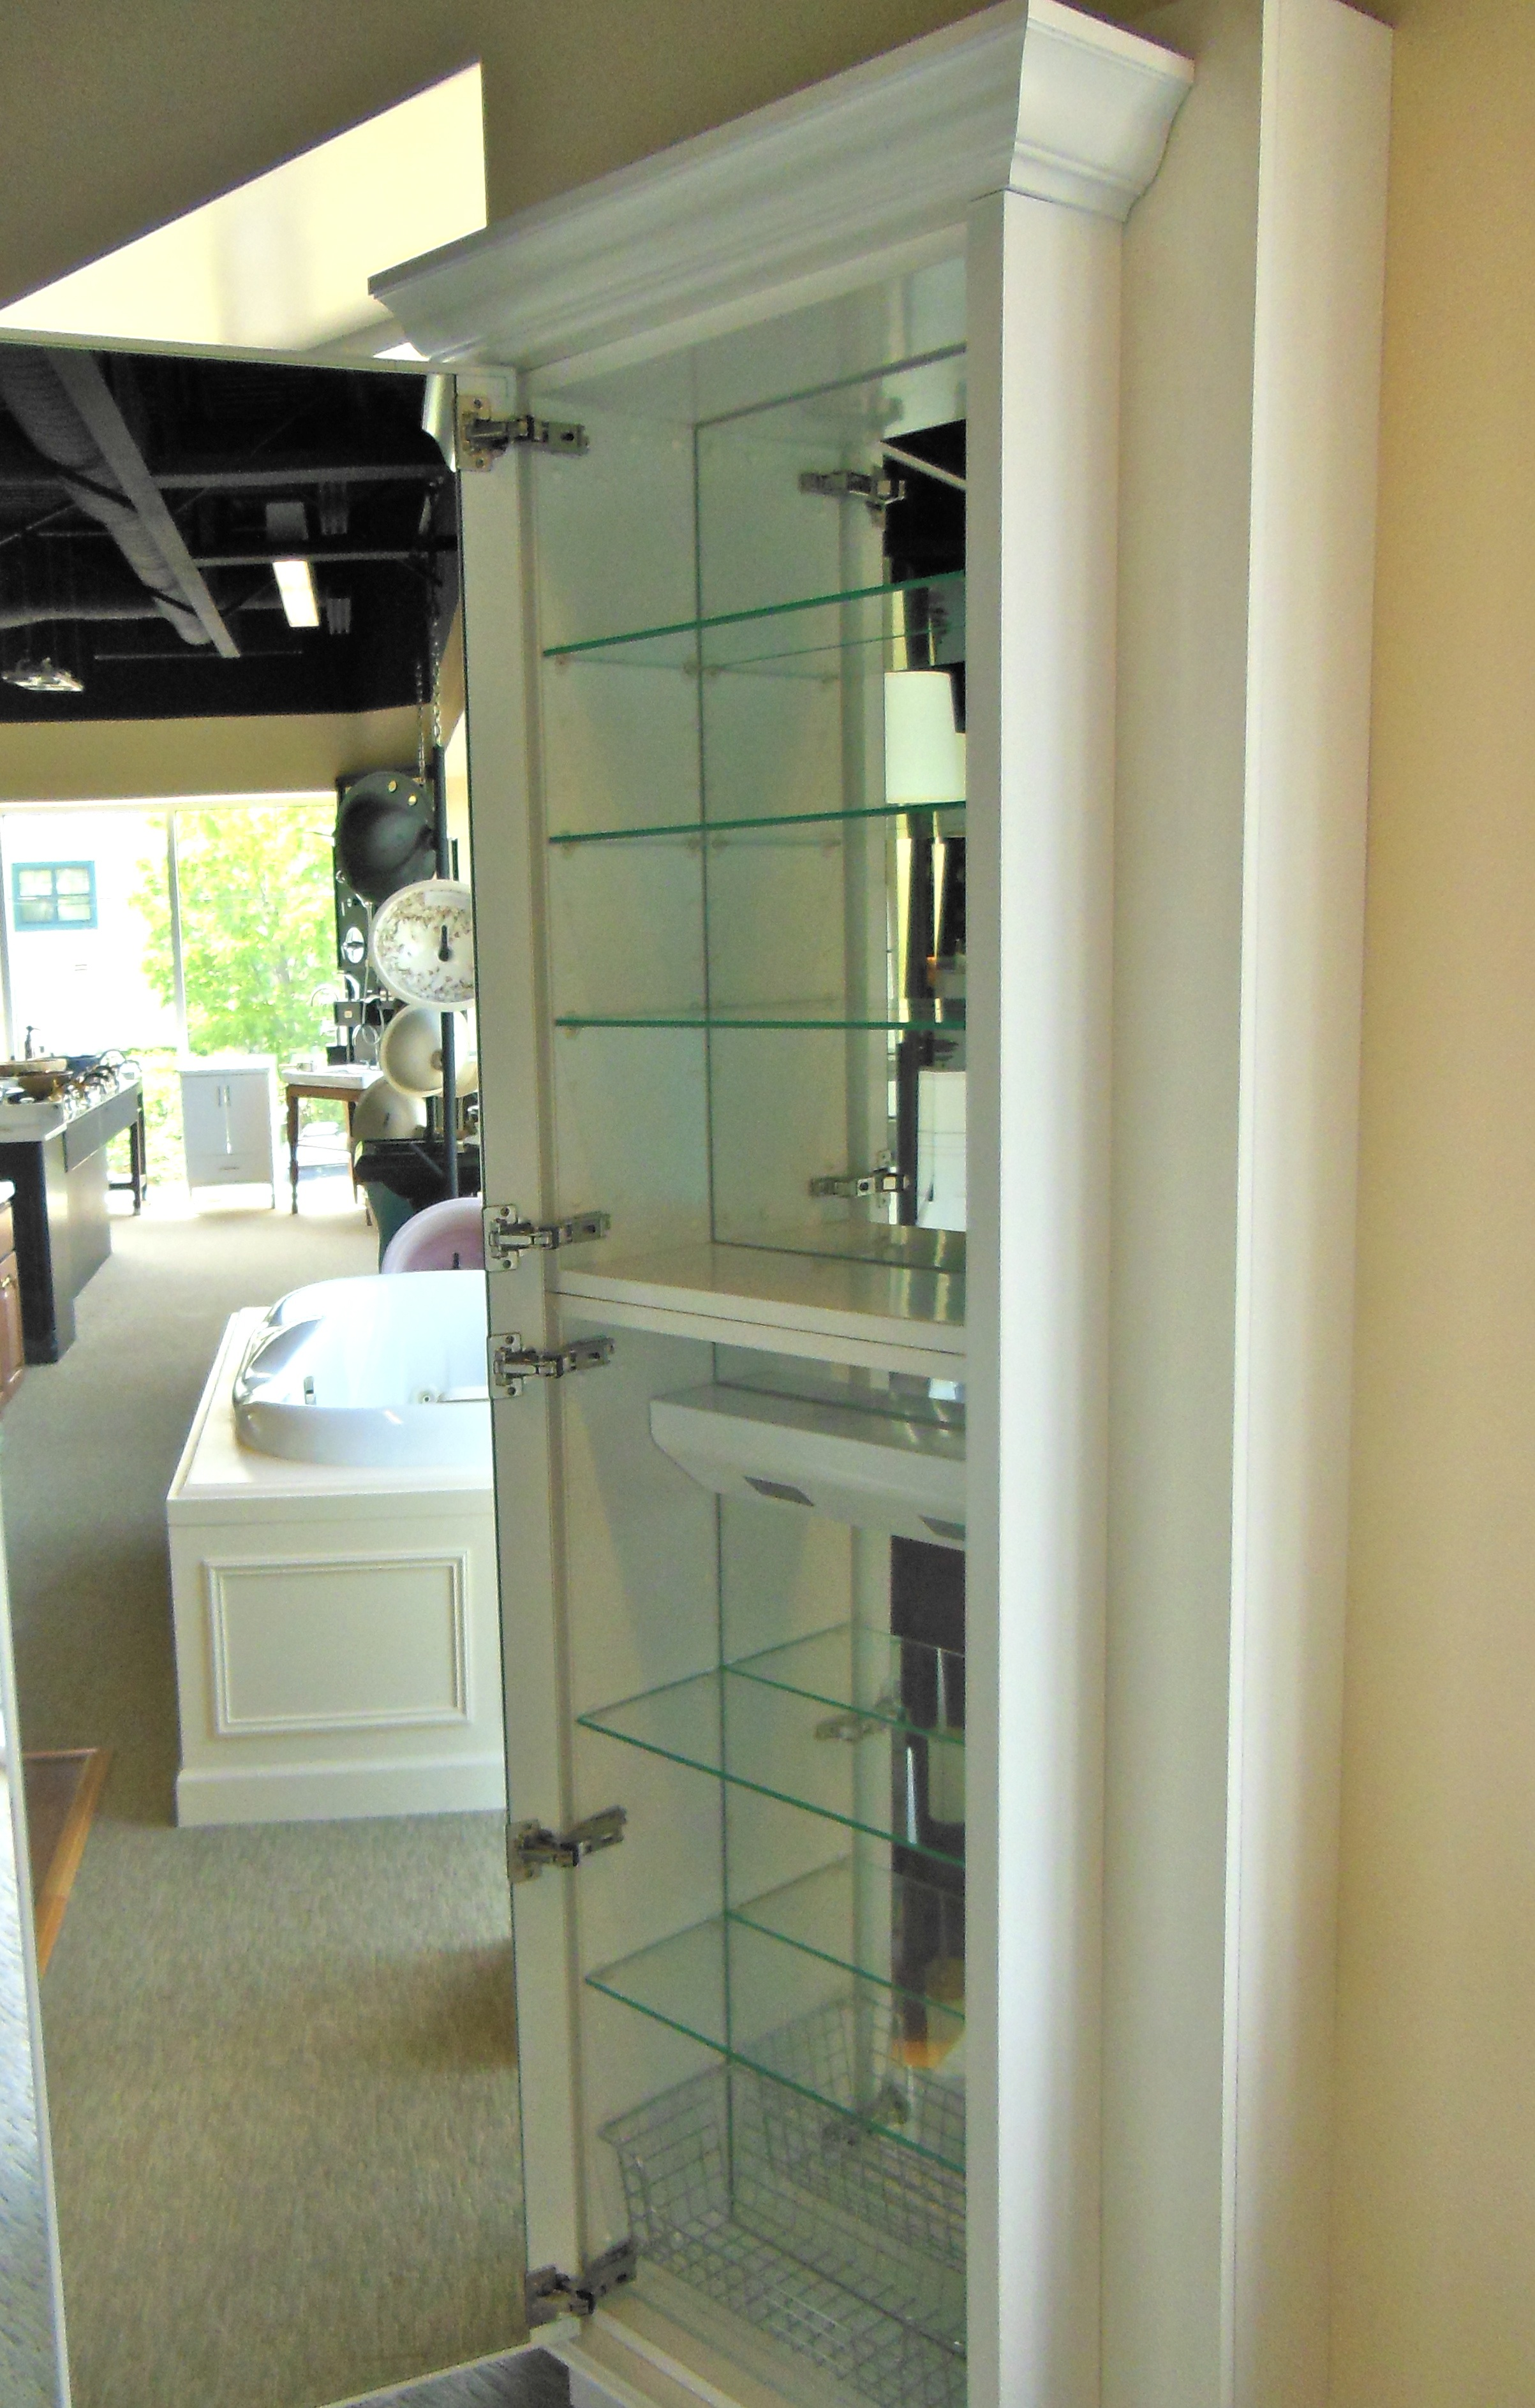 Tall Bathroom Mirrors Love This X Large Medicine Cabinet Designing Our